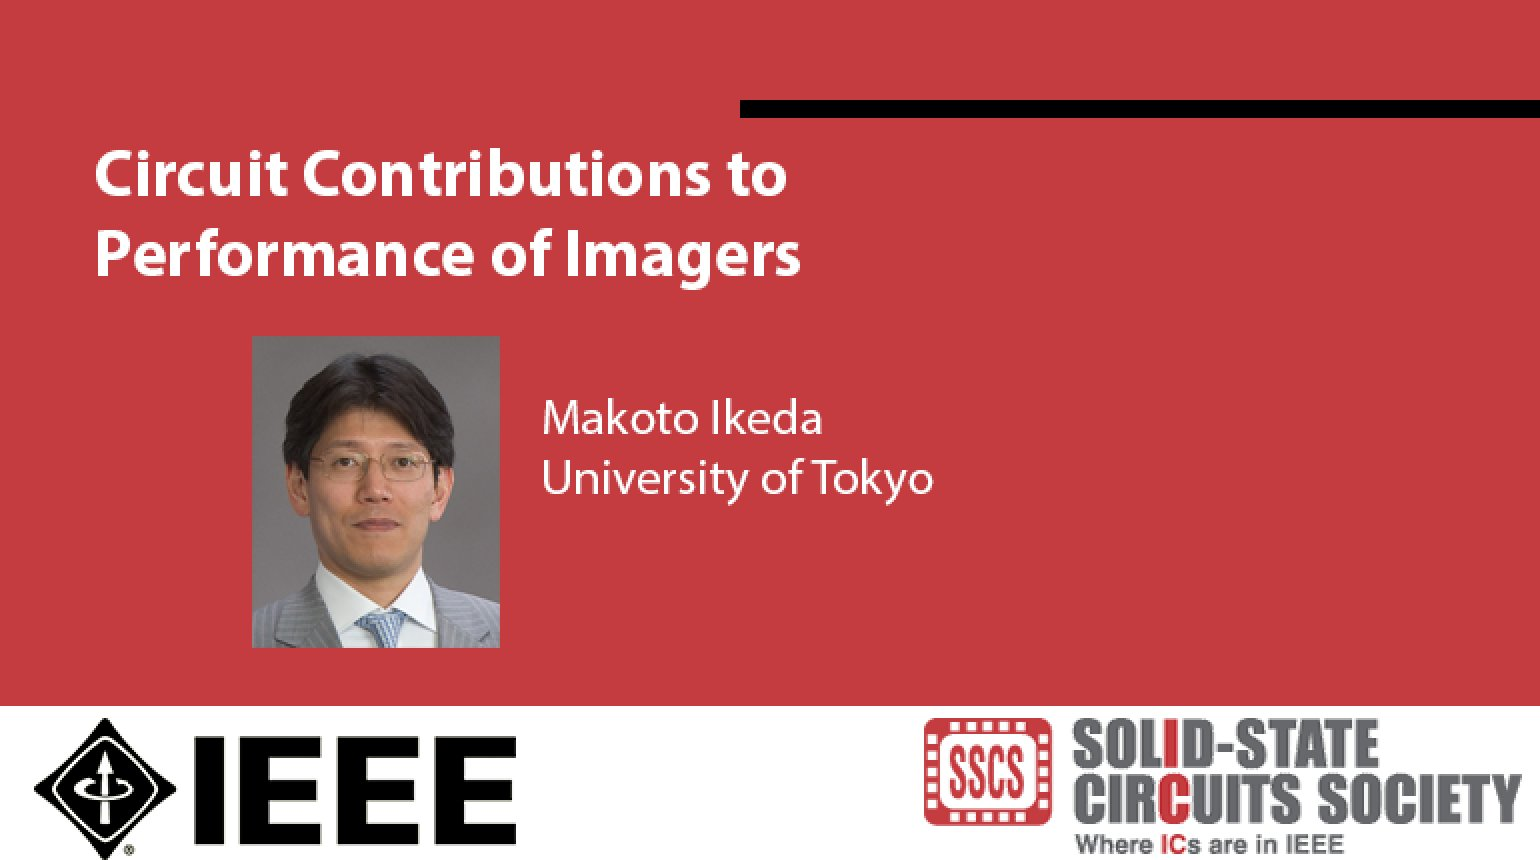 Circuit Contributions to Performance of Imagers Video